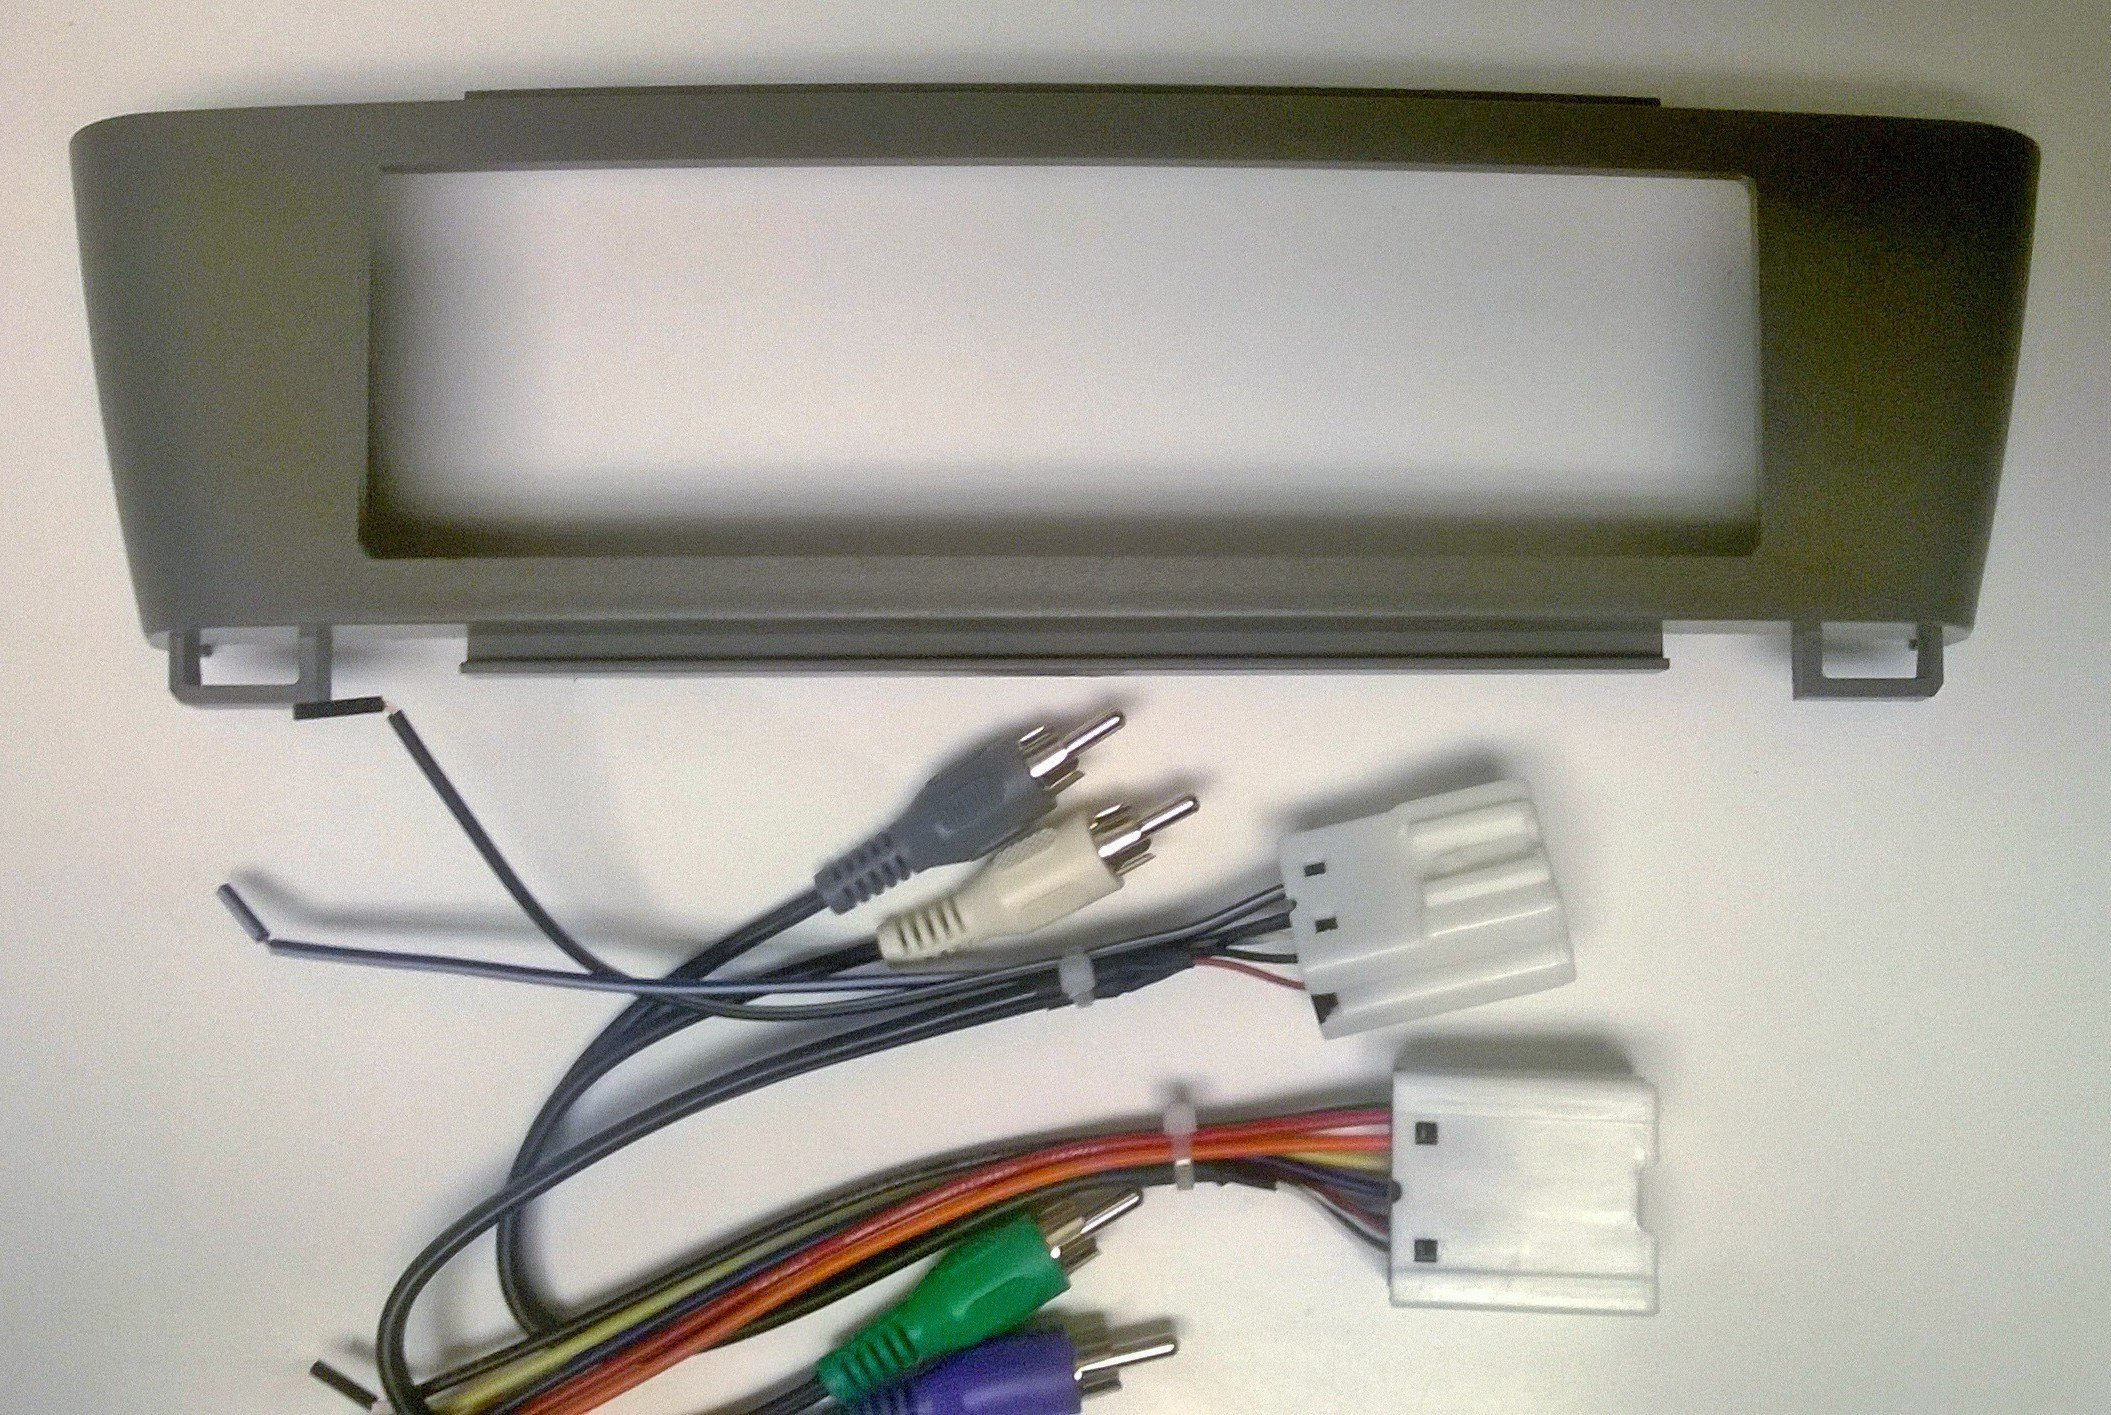 stereo dash kit and wire harness for installing a new. Black Bedroom Furniture Sets. Home Design Ideas